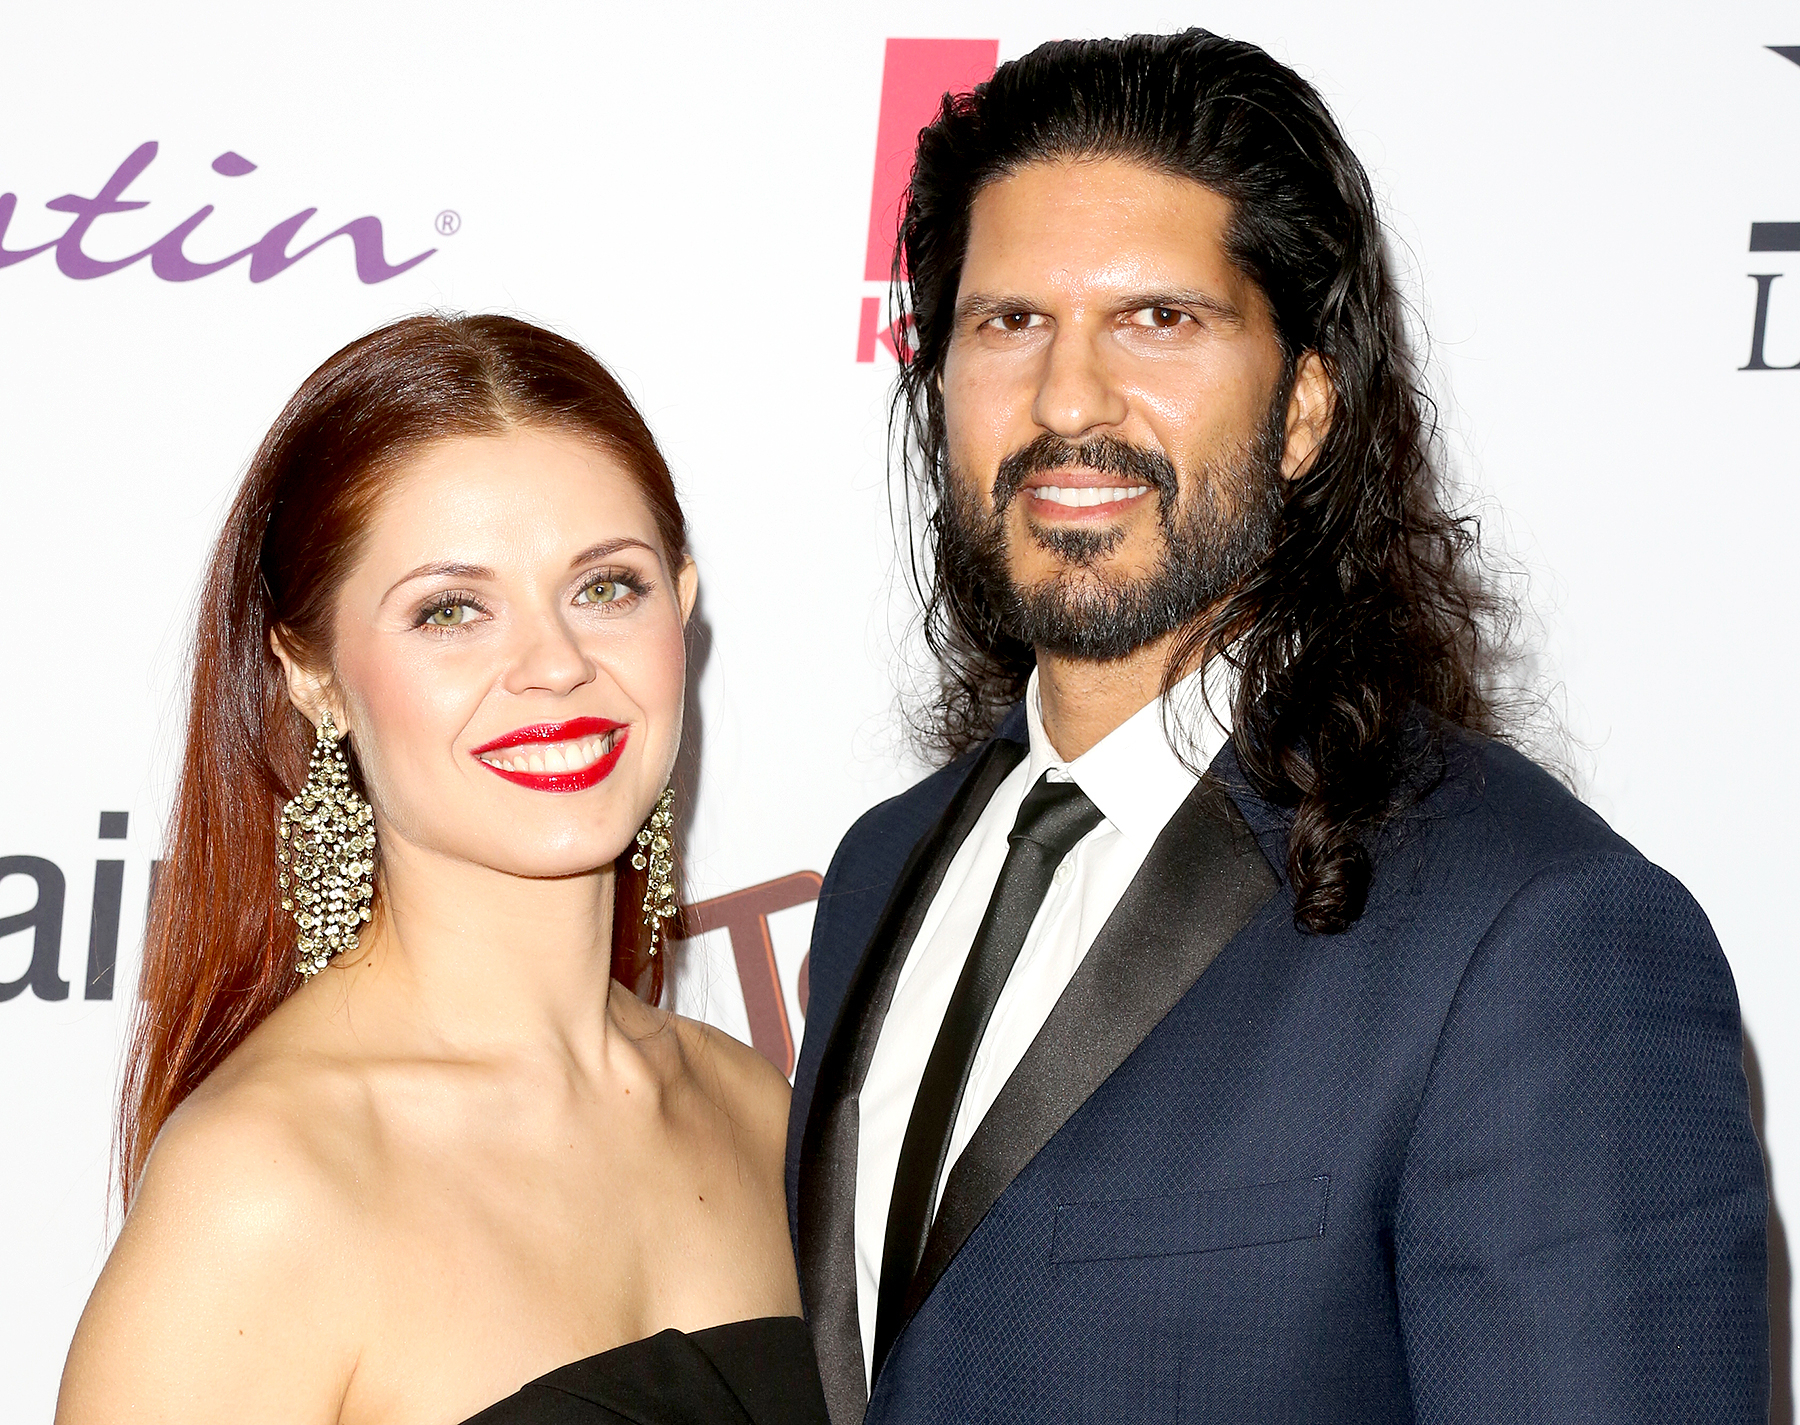 Anna Trebunskaya and Nevin Millan on February 22, 2017 in Los Angeles, California.